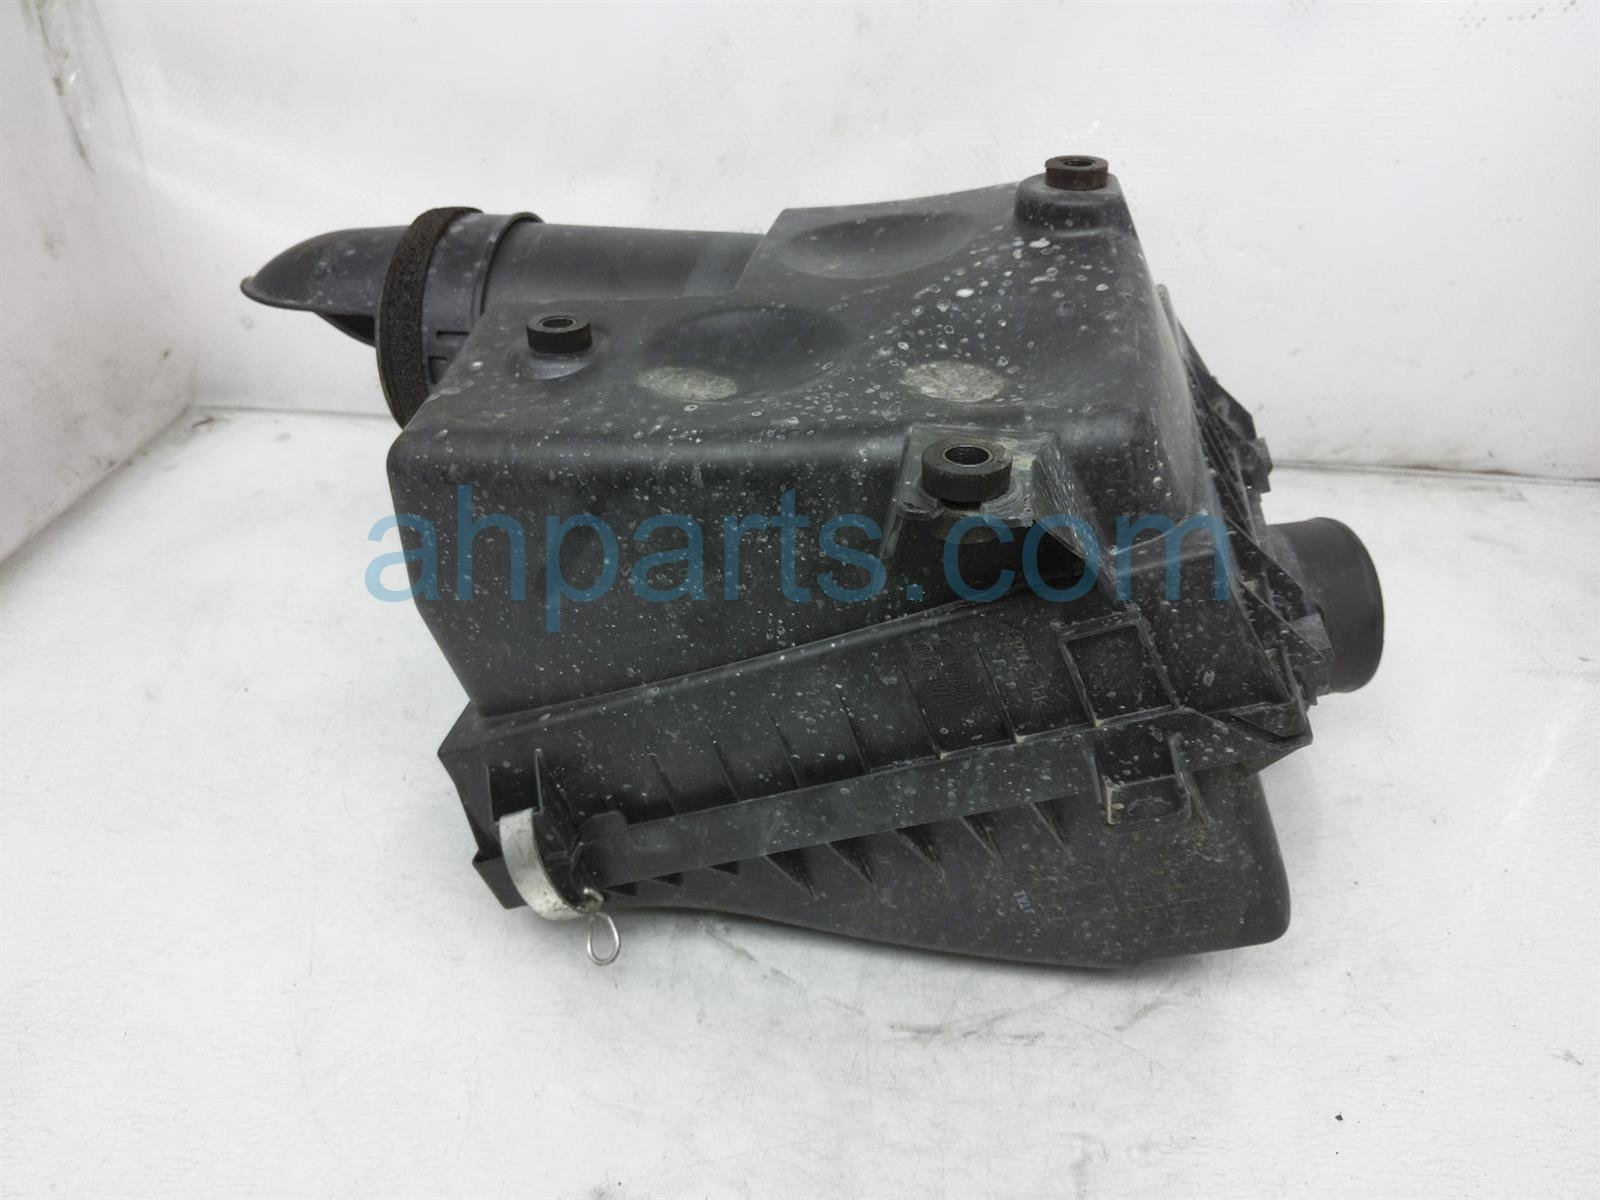 2017 Toyota Tacoma Air Cleaner Intake Box 17700 0P230 Replacement